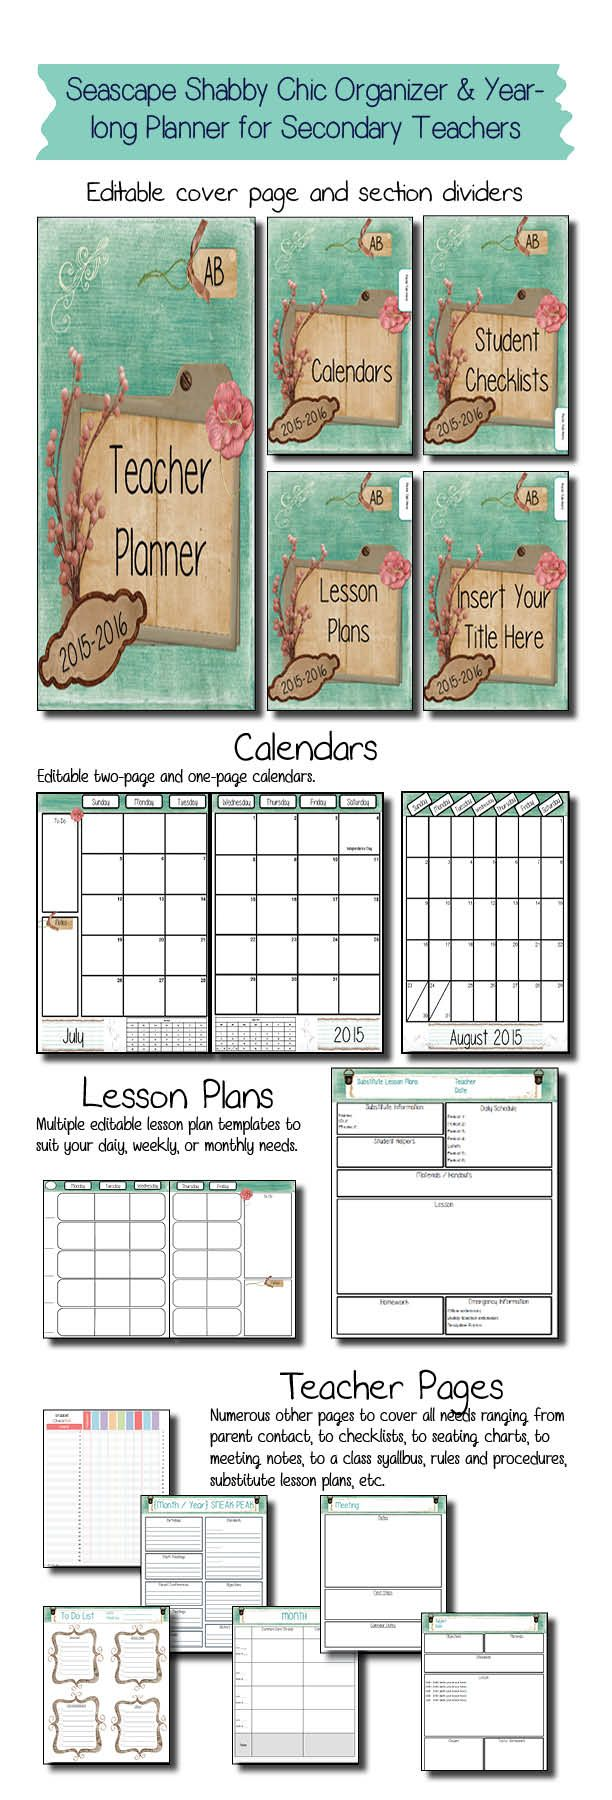 This stunning seascape shabby chic classroom organizer is just what secondary teachers need to get prepared in style for the new school year!  I have taught middle school for 15 years and I included the templates for every resource I have found I cannot live without and eliminated all of the excess that looks pretty in other organizers but never gets filled out or updated past the third week of school.  This product is EDITABLE in the form of PowerPoint so you can customize your pages!